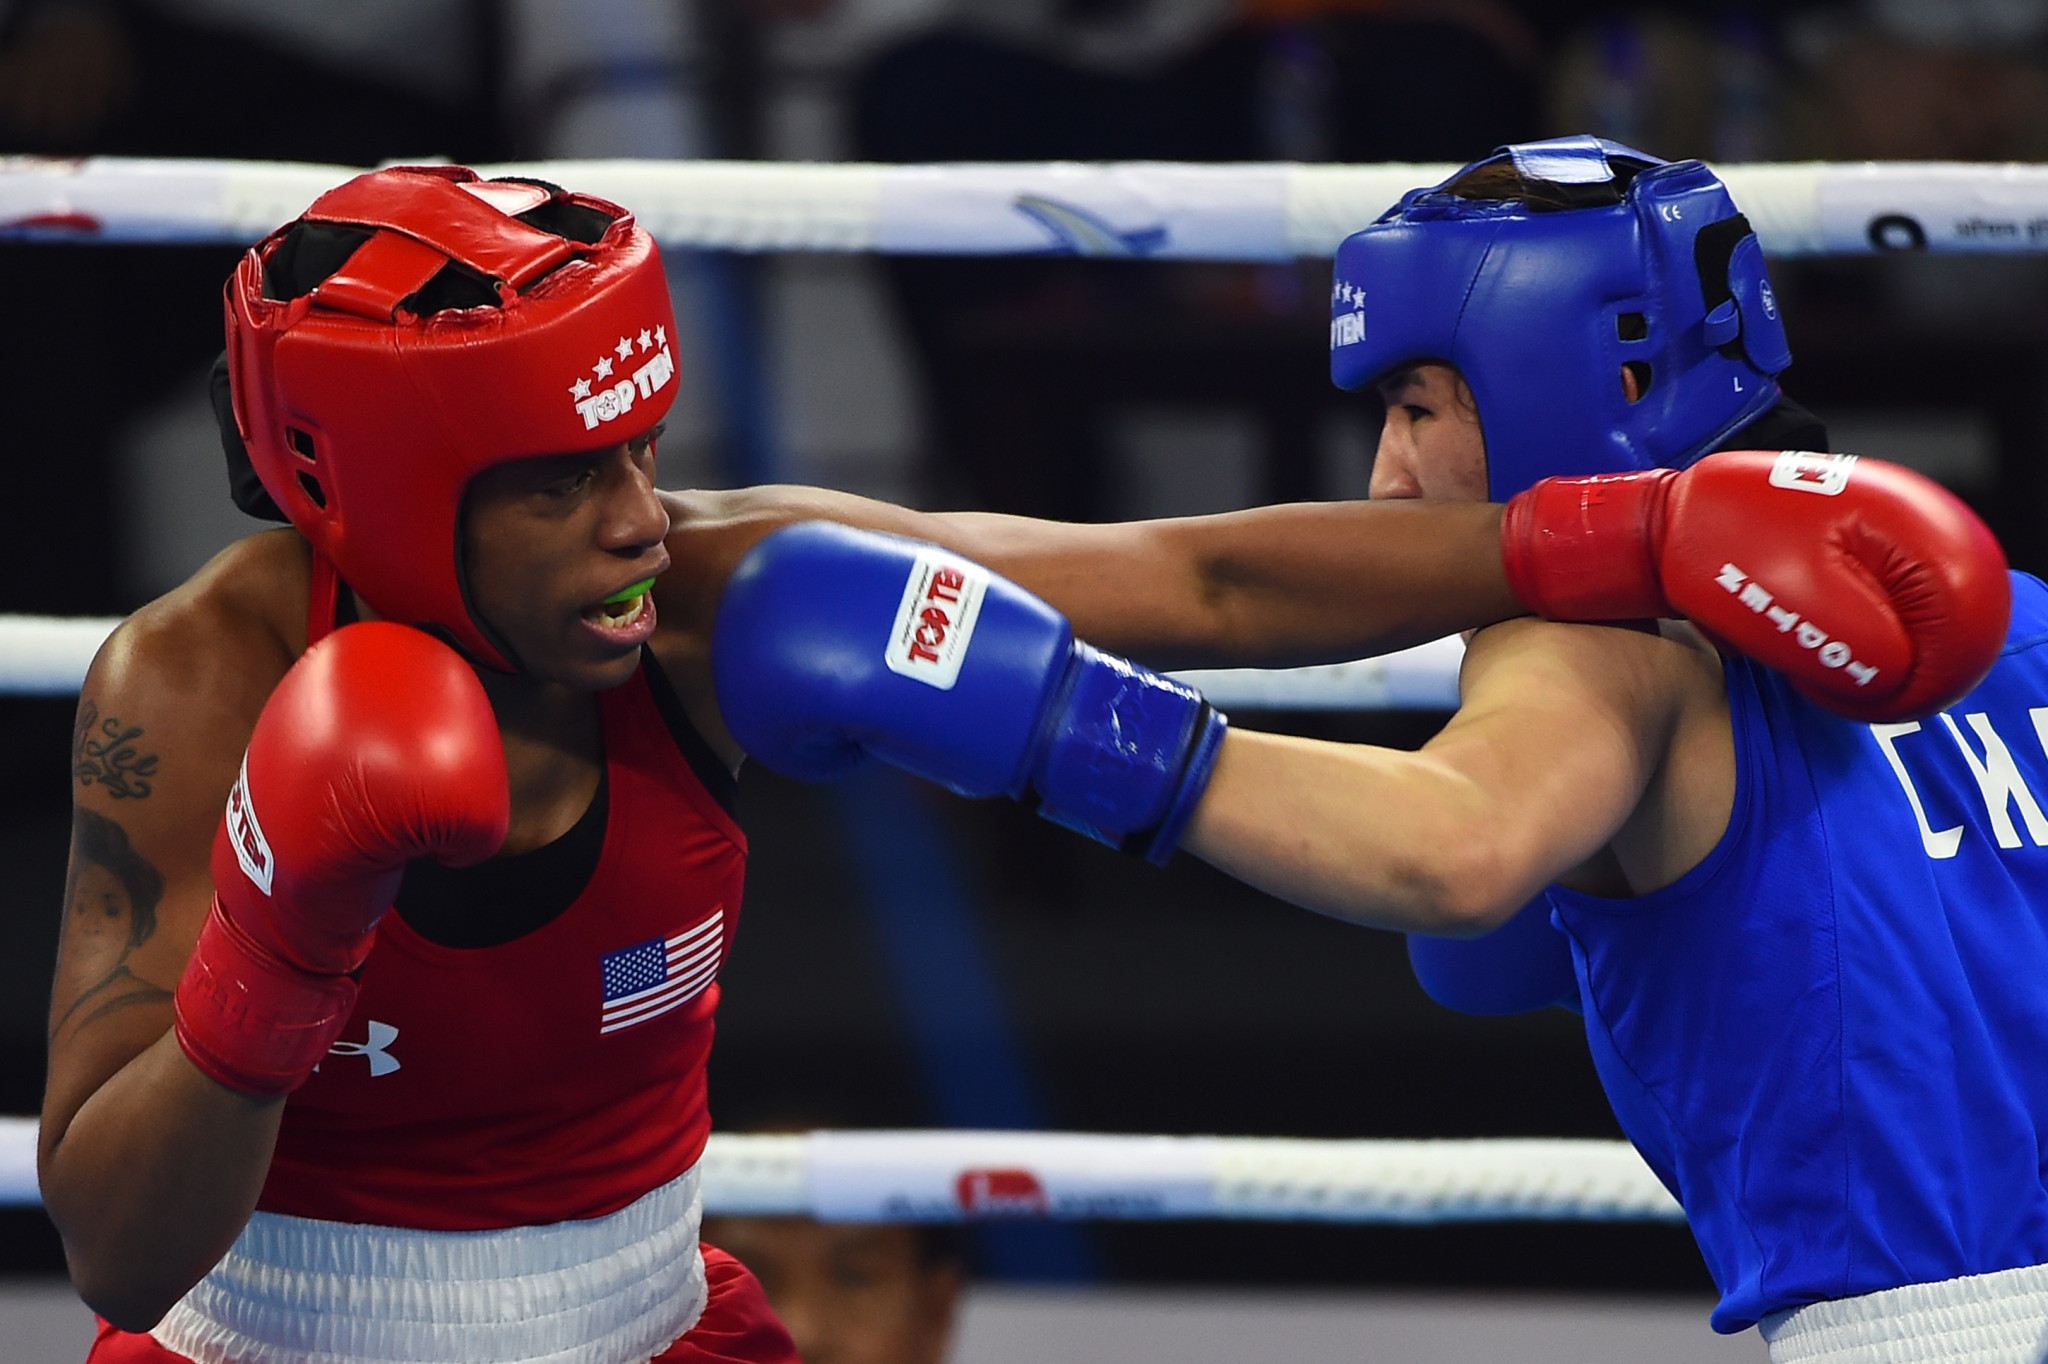 Pan American champion Graham edges into AIBA Women's World Boxing Championships quarter-final